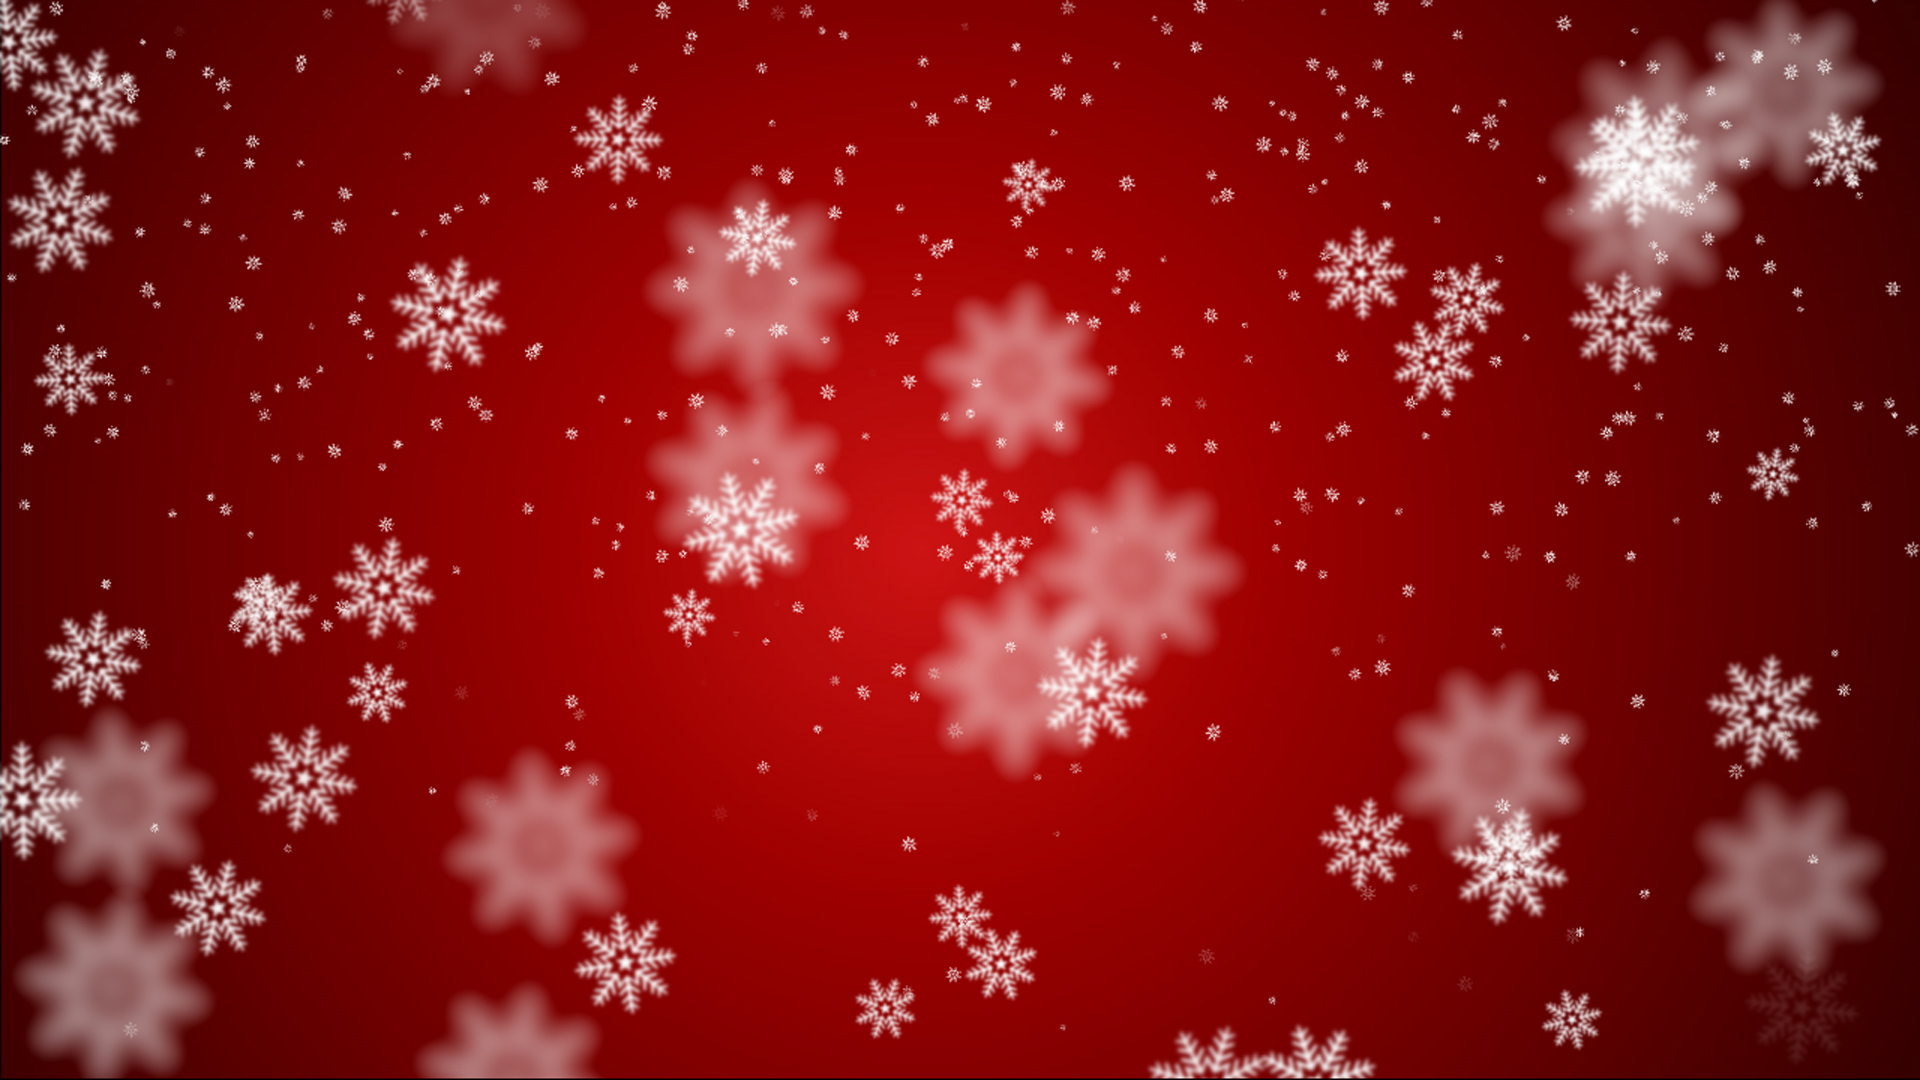 Red Christmas Backgrounds HD Wallpaper, Background Images